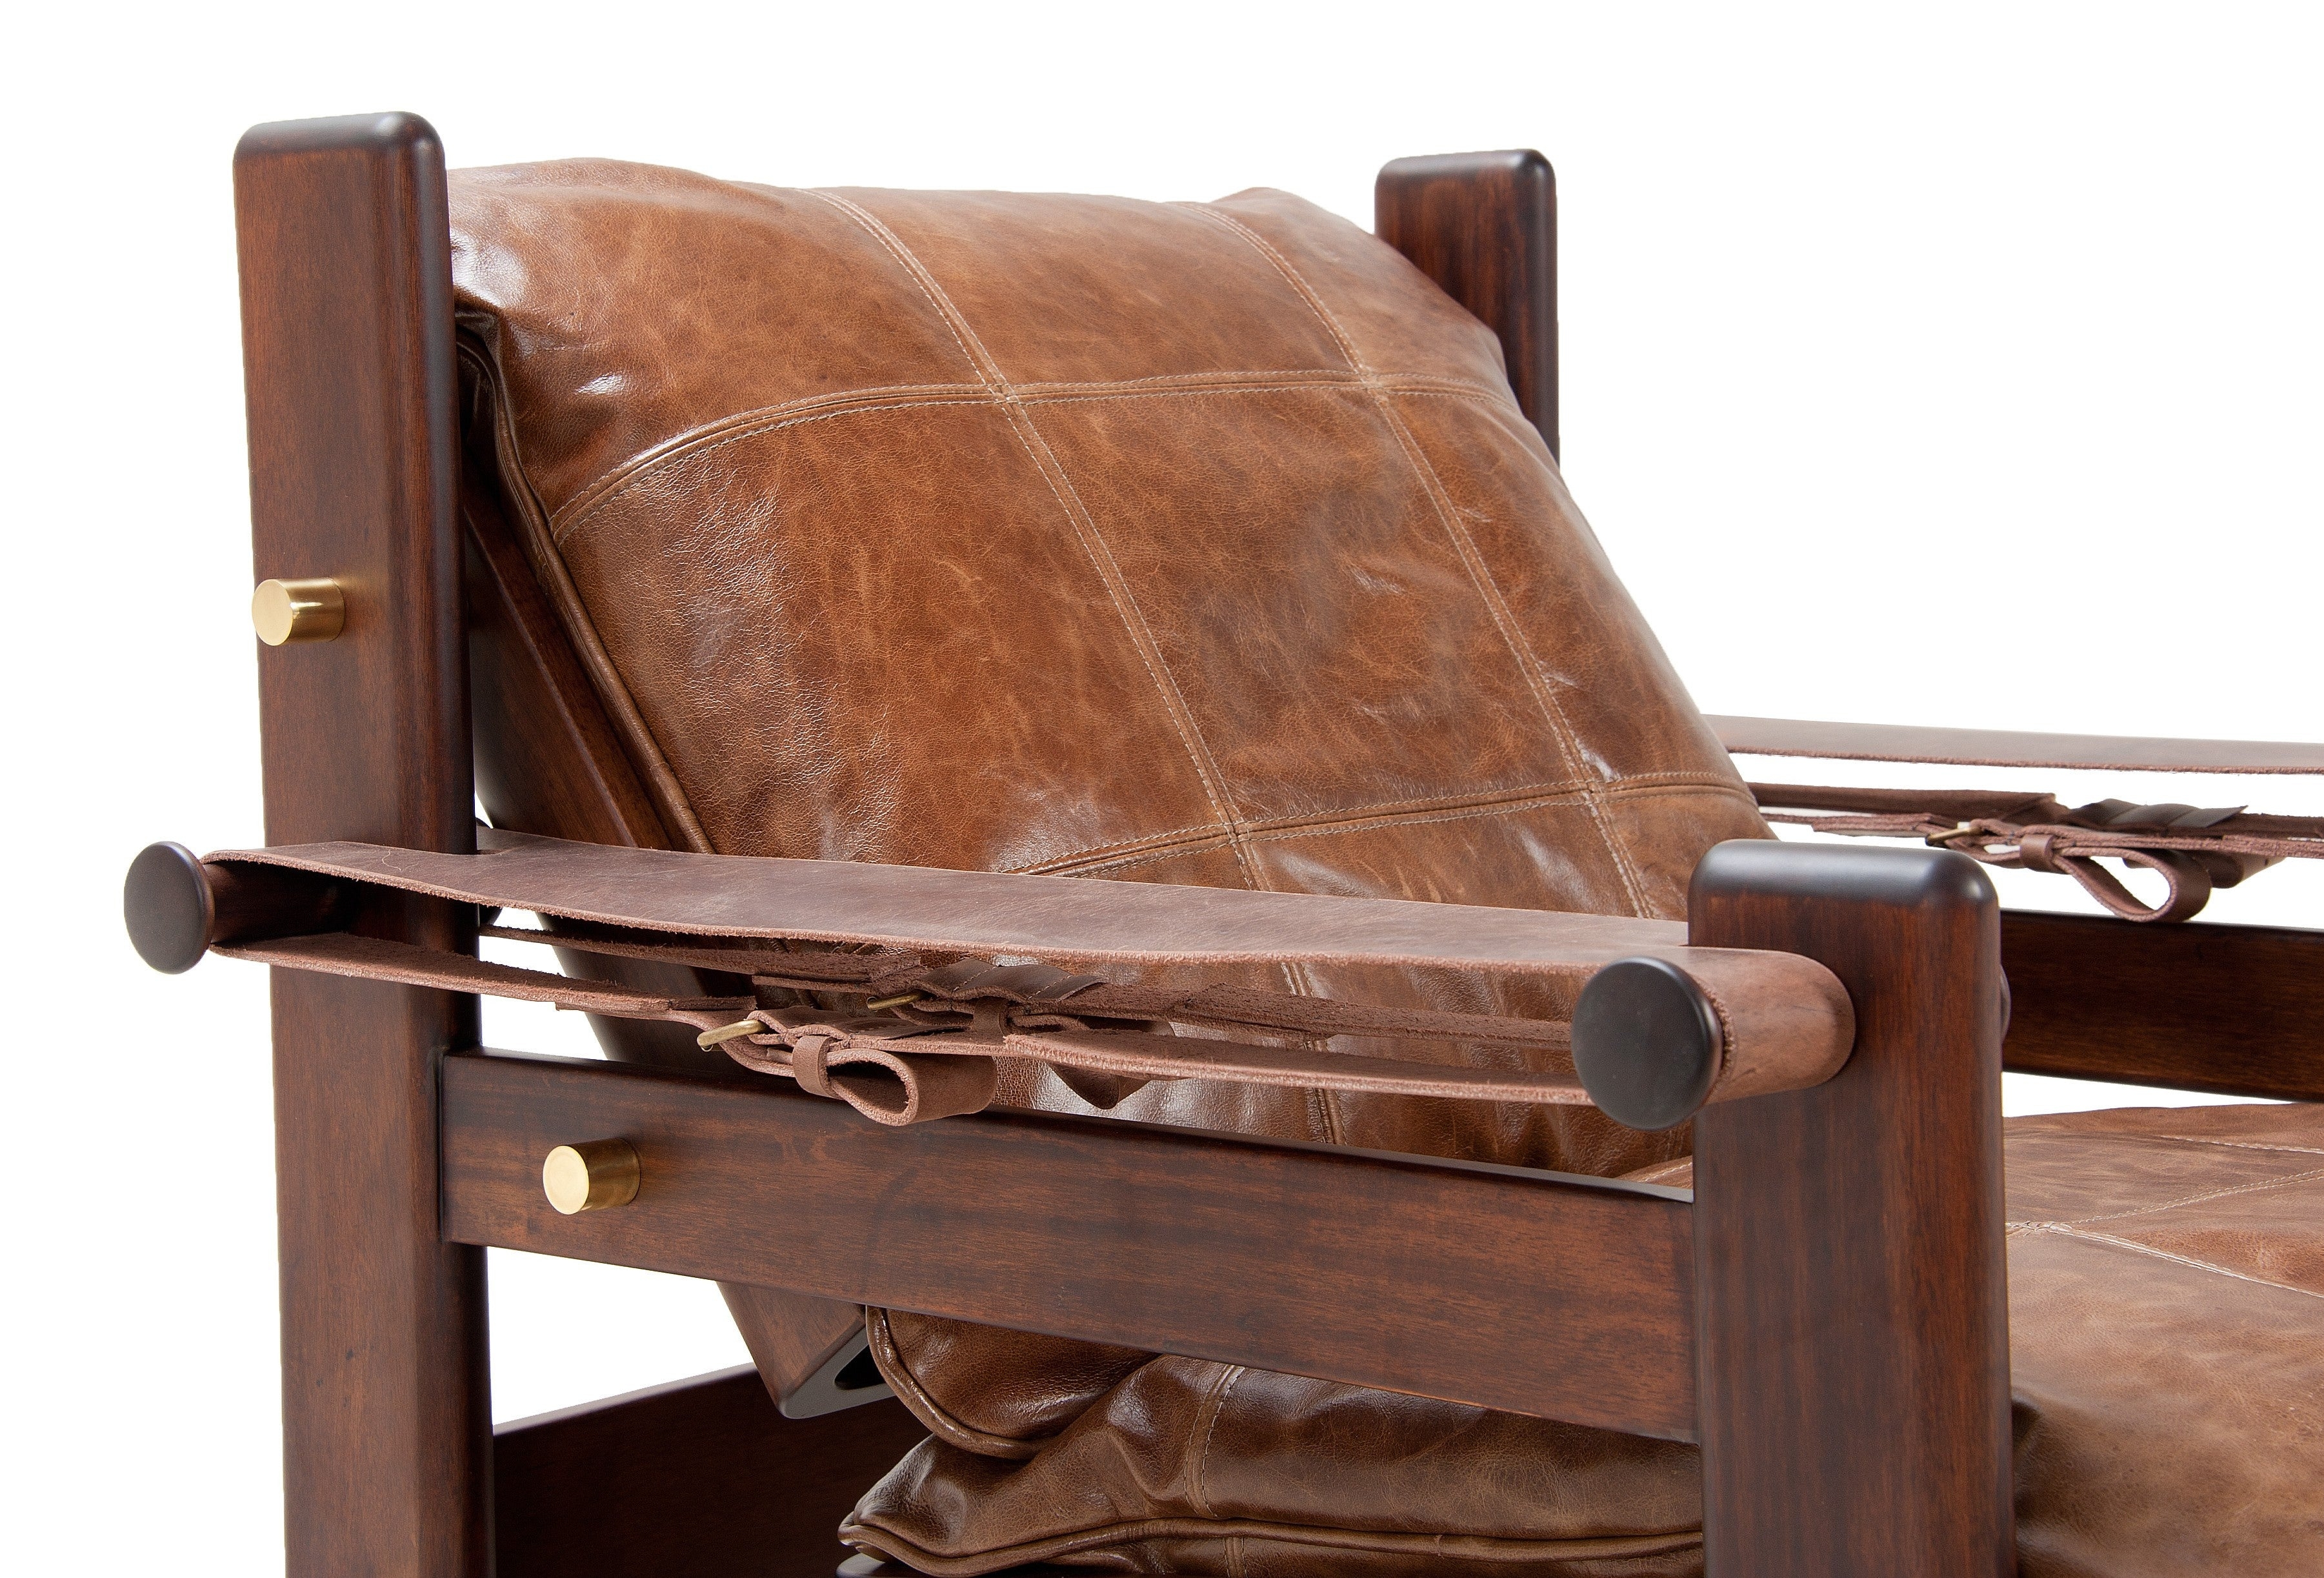 Senhor armchair by Bernardo Figueiredo (In memory) - Kelly Christian Designs